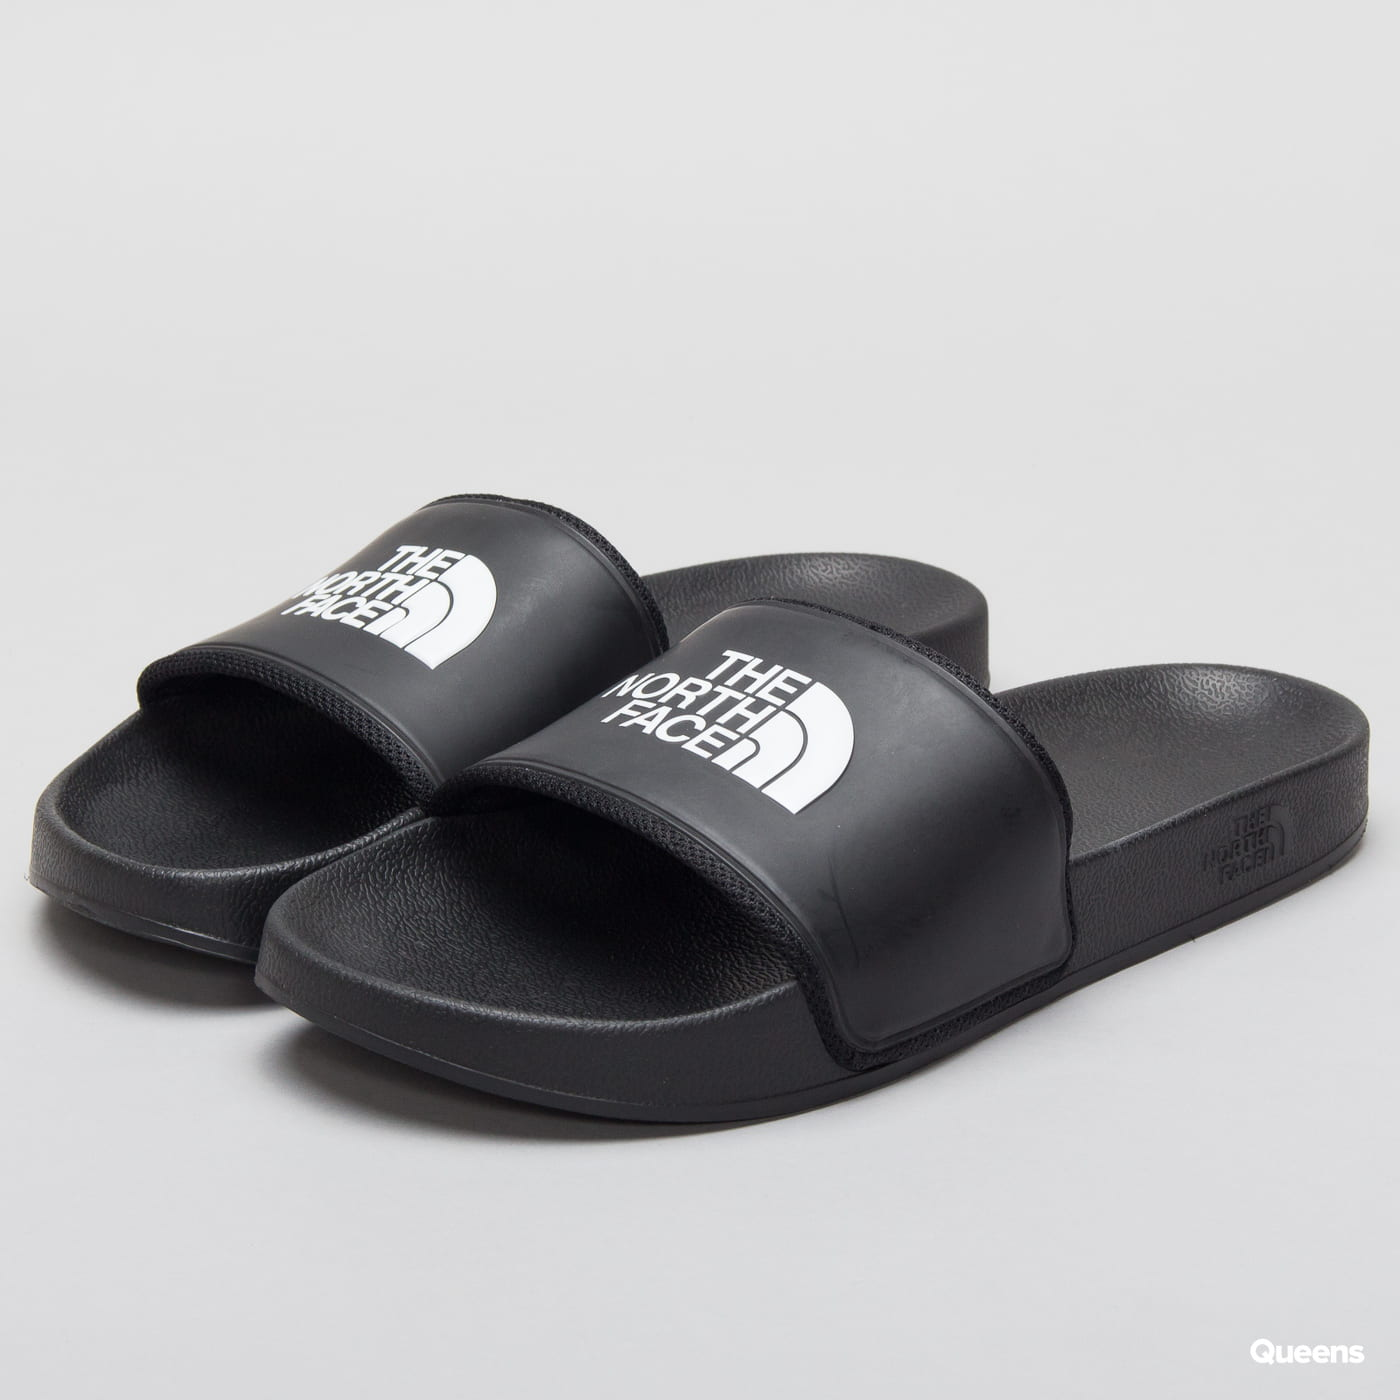 The North Face M Base Camp Slide II tnf black / tnf white